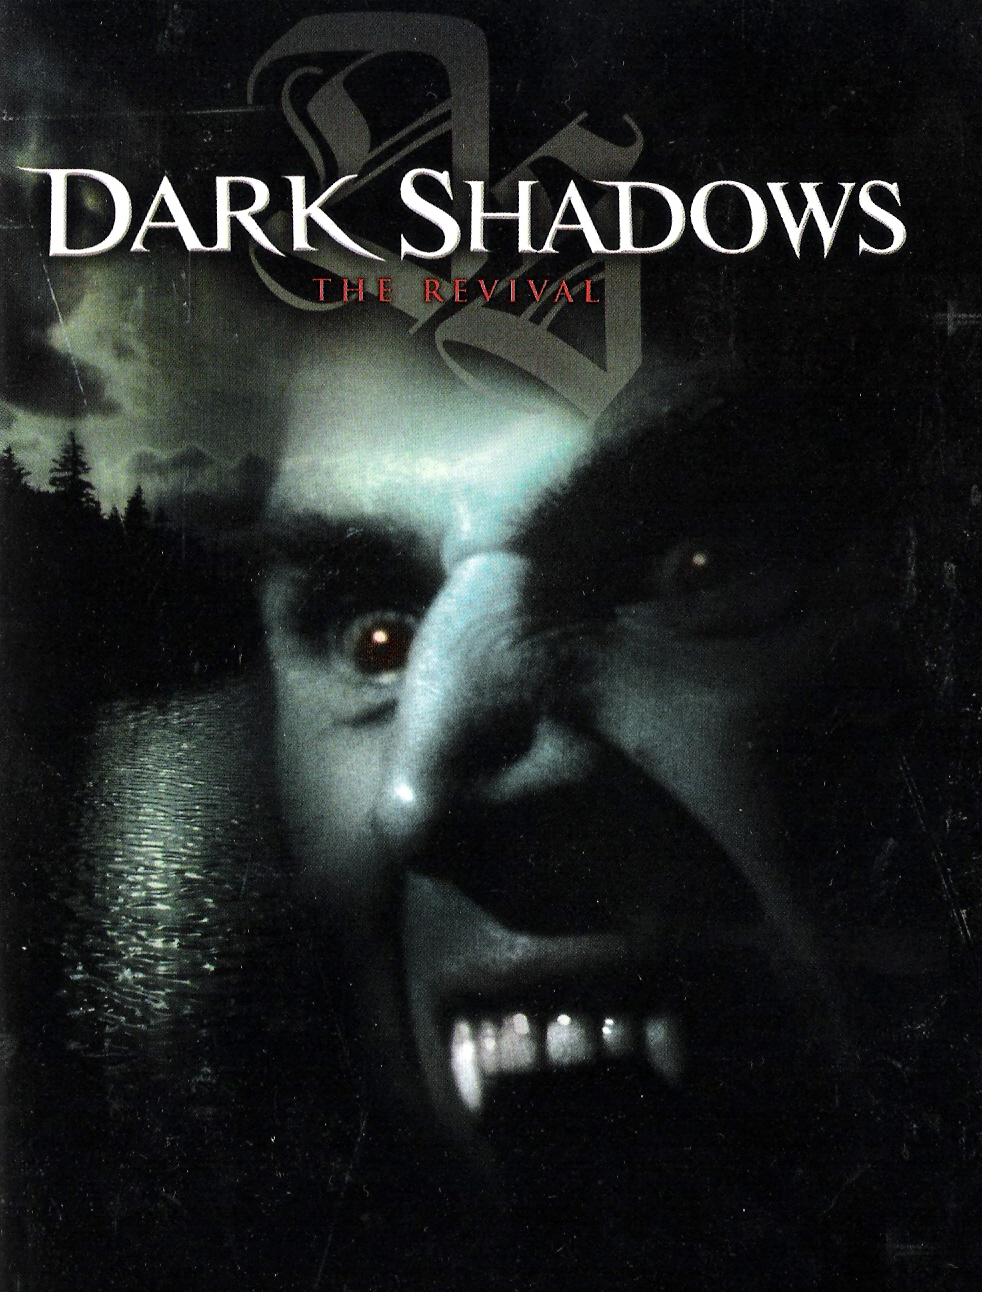 Dark Shadows (1991)/Gallery